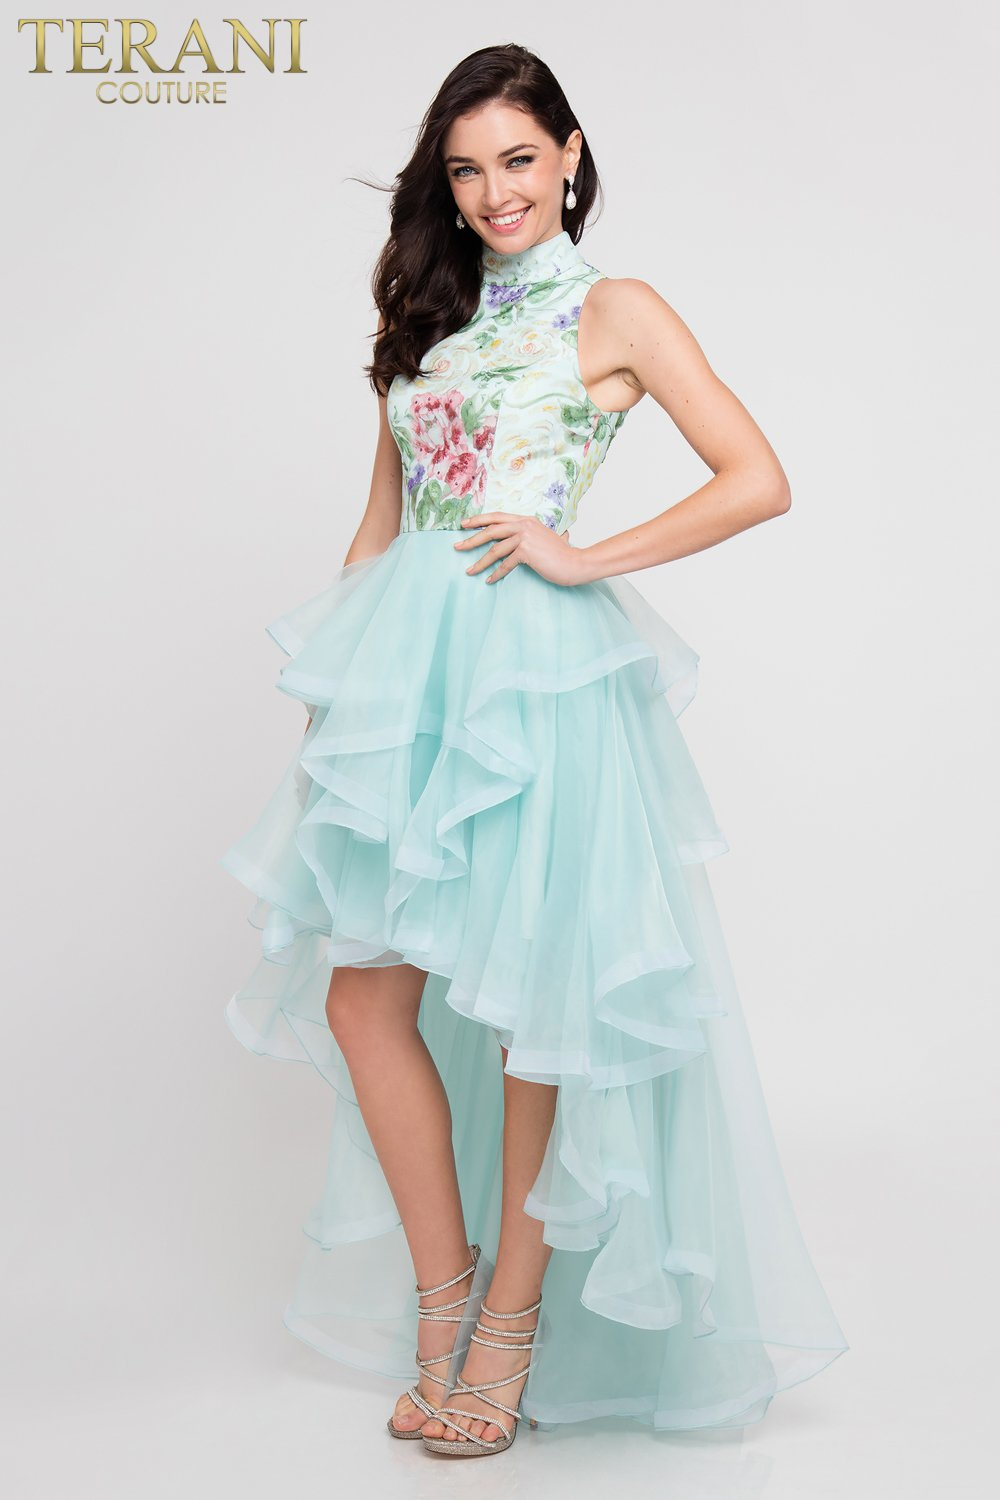 Find Prom Dresses